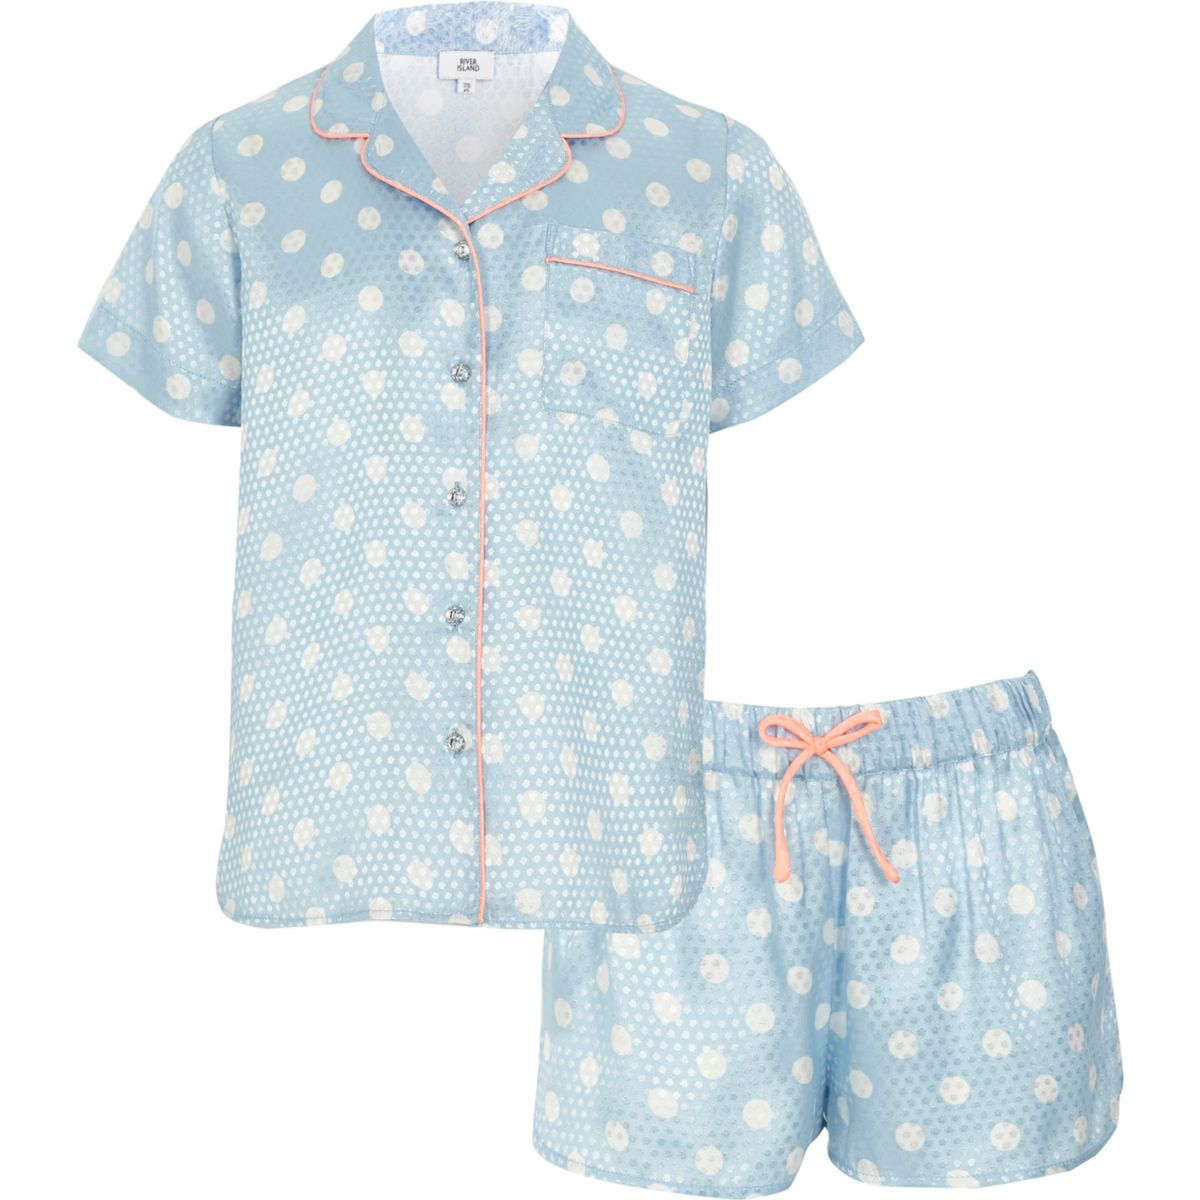 Girls blue polka dot pajama shirt set